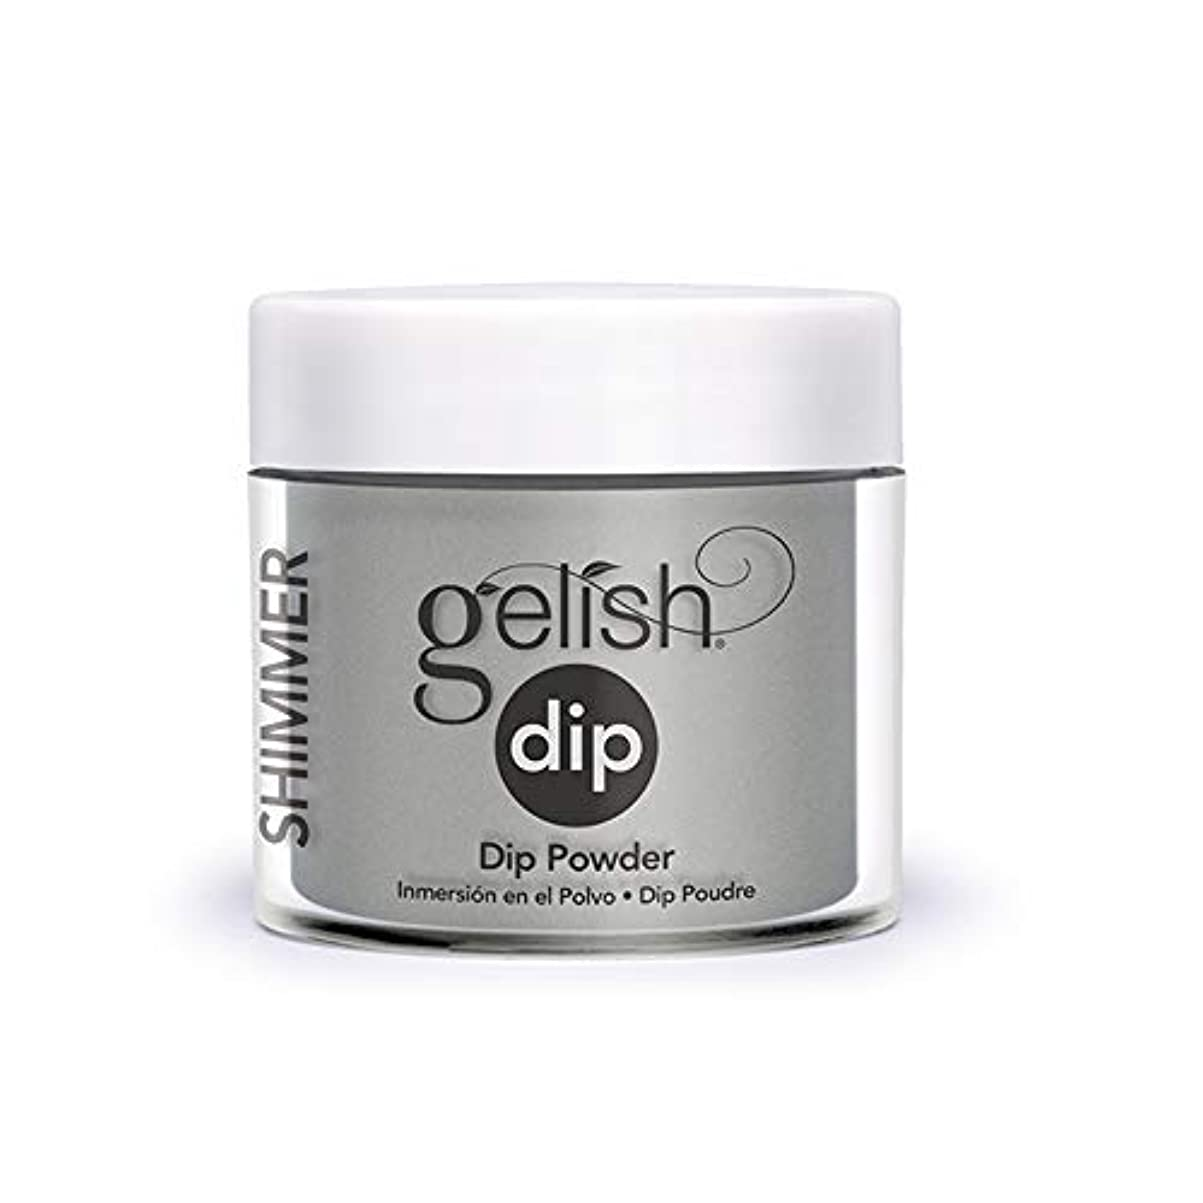 実験室終わった防衛Harmony Gelish - Acrylic Dip Powder - Holy Cow-Girl! - 23g / 0.8oz